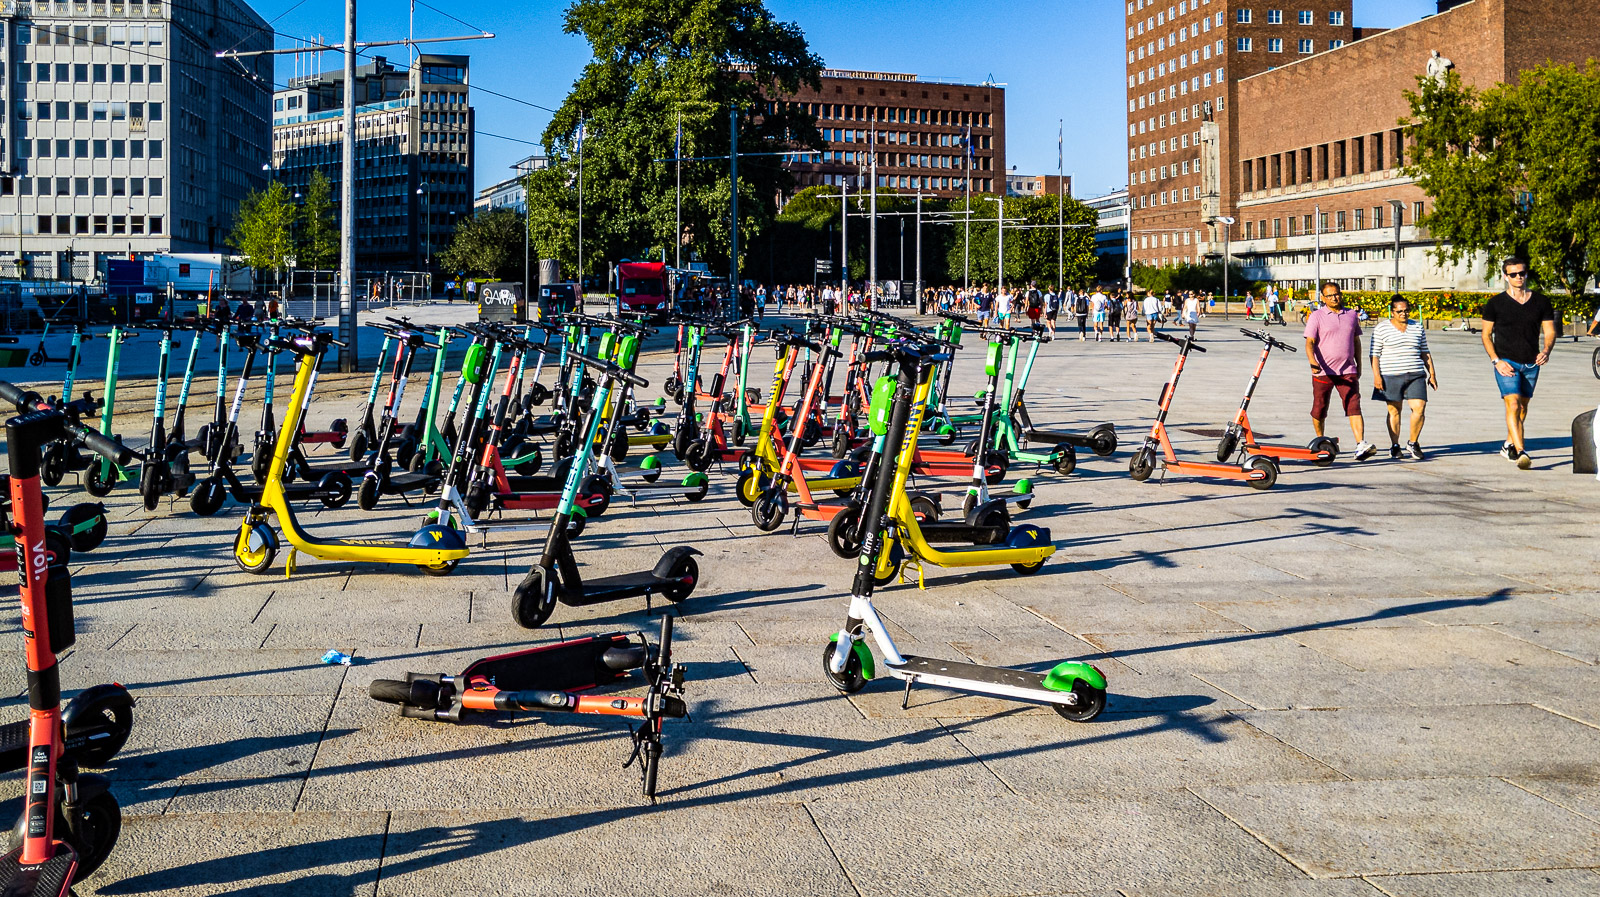 E-scooters at the entrance to Aker Brygge in Oslo, Norway.